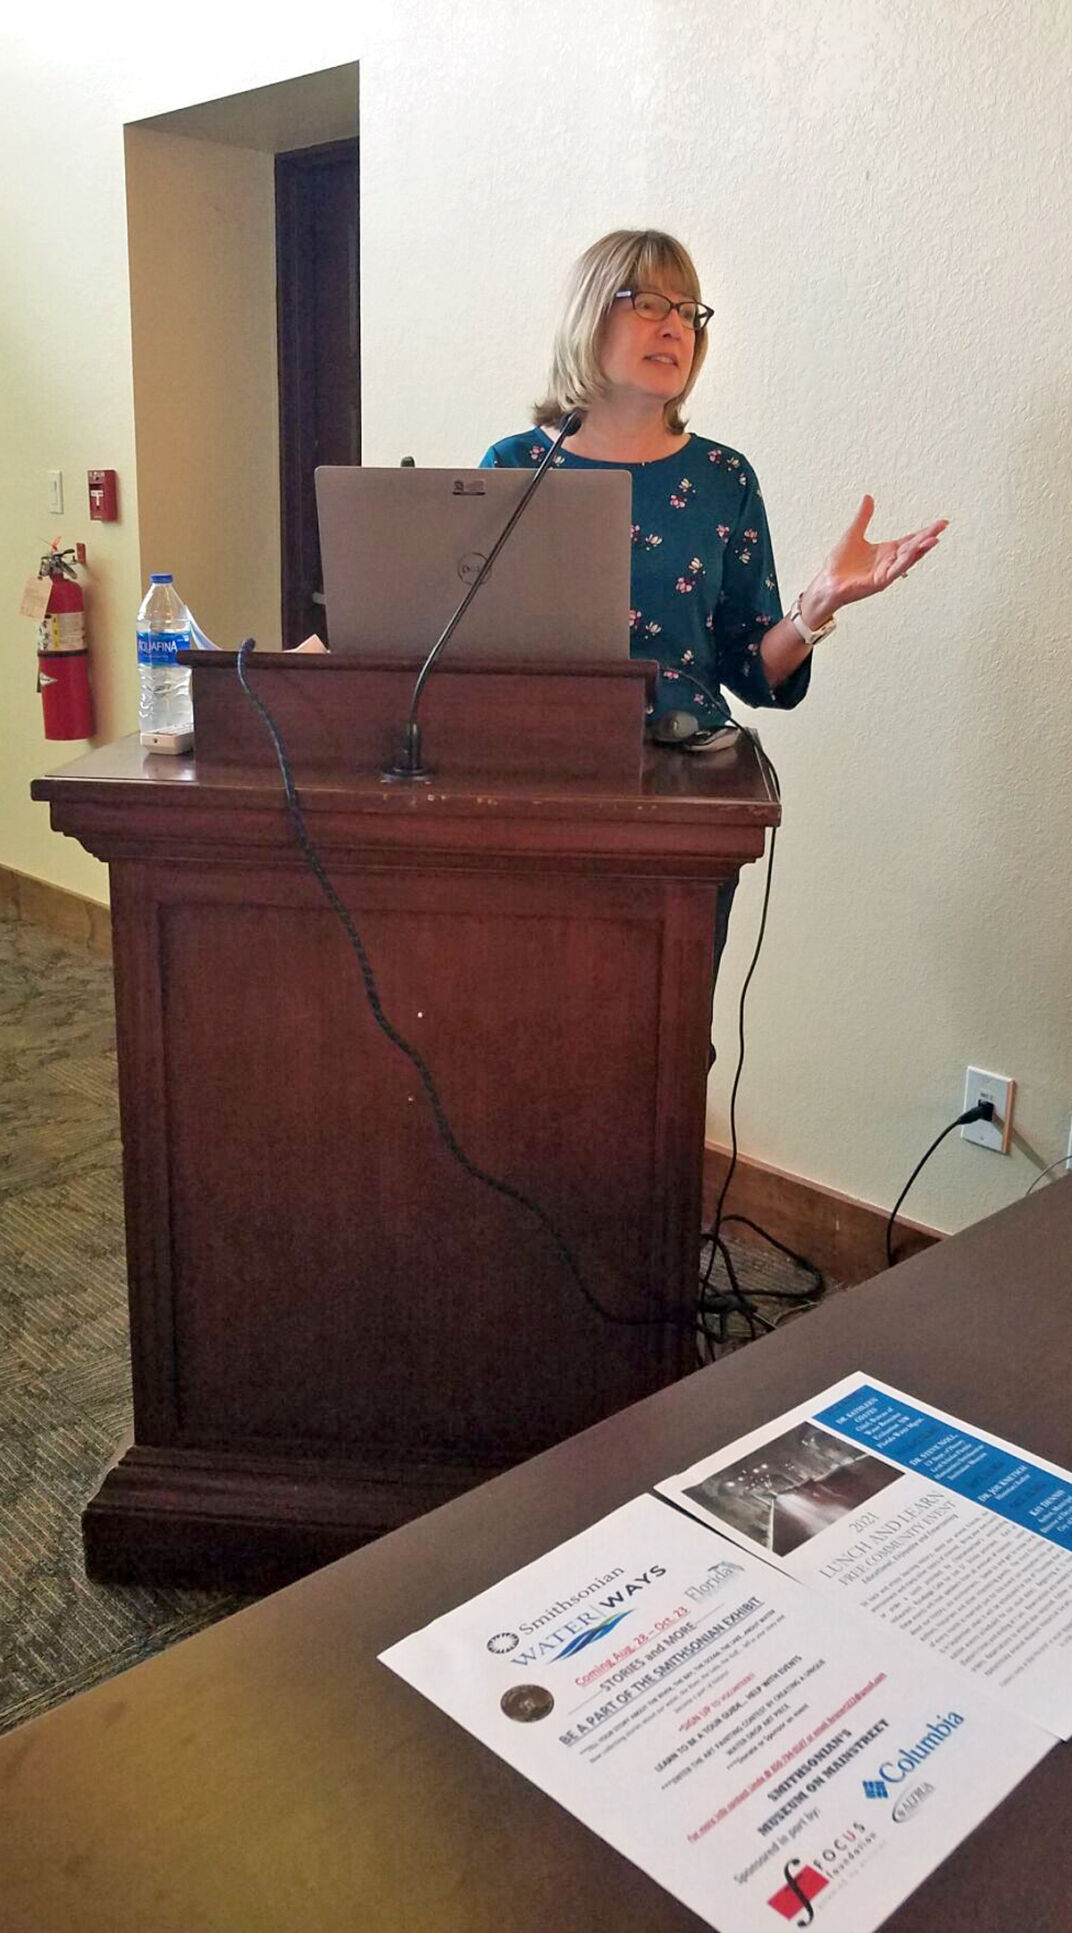 NFWMD bureau chief speaks at Lunch and Learn